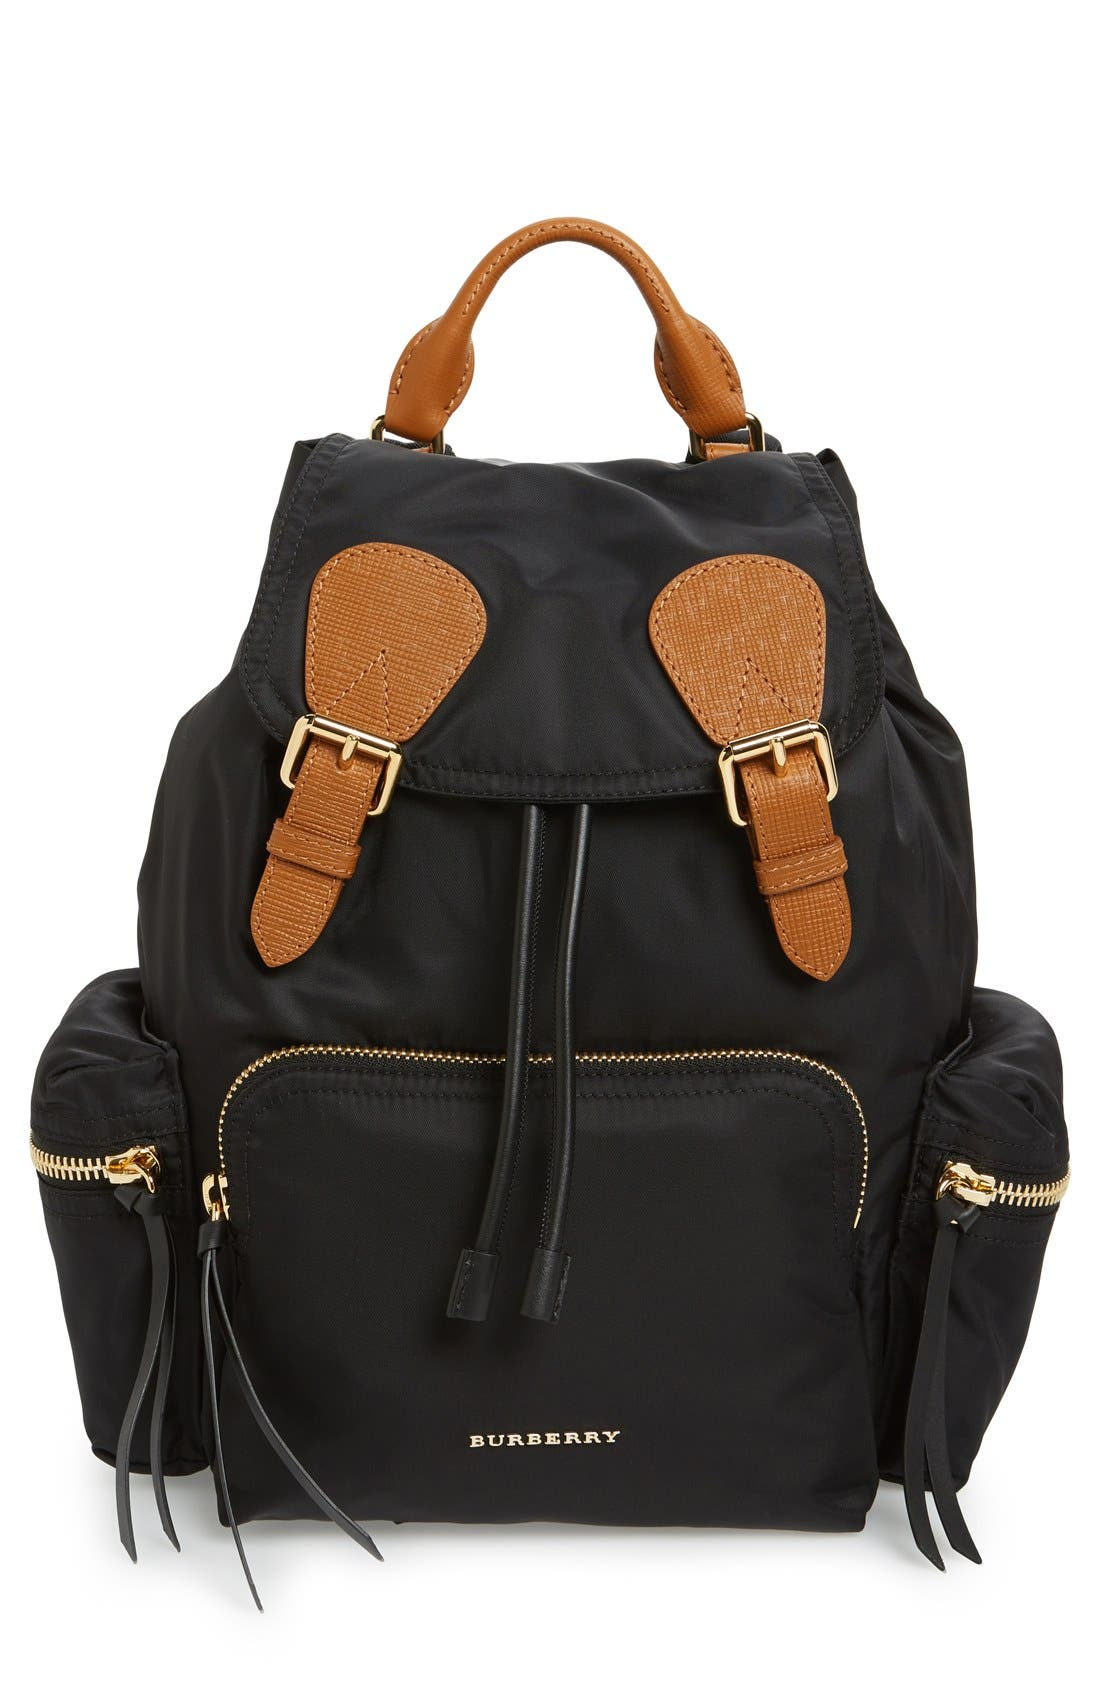 'Medium Runway Rucksack' Nylon Backpack,                             Main thumbnail 1, color,                             Black